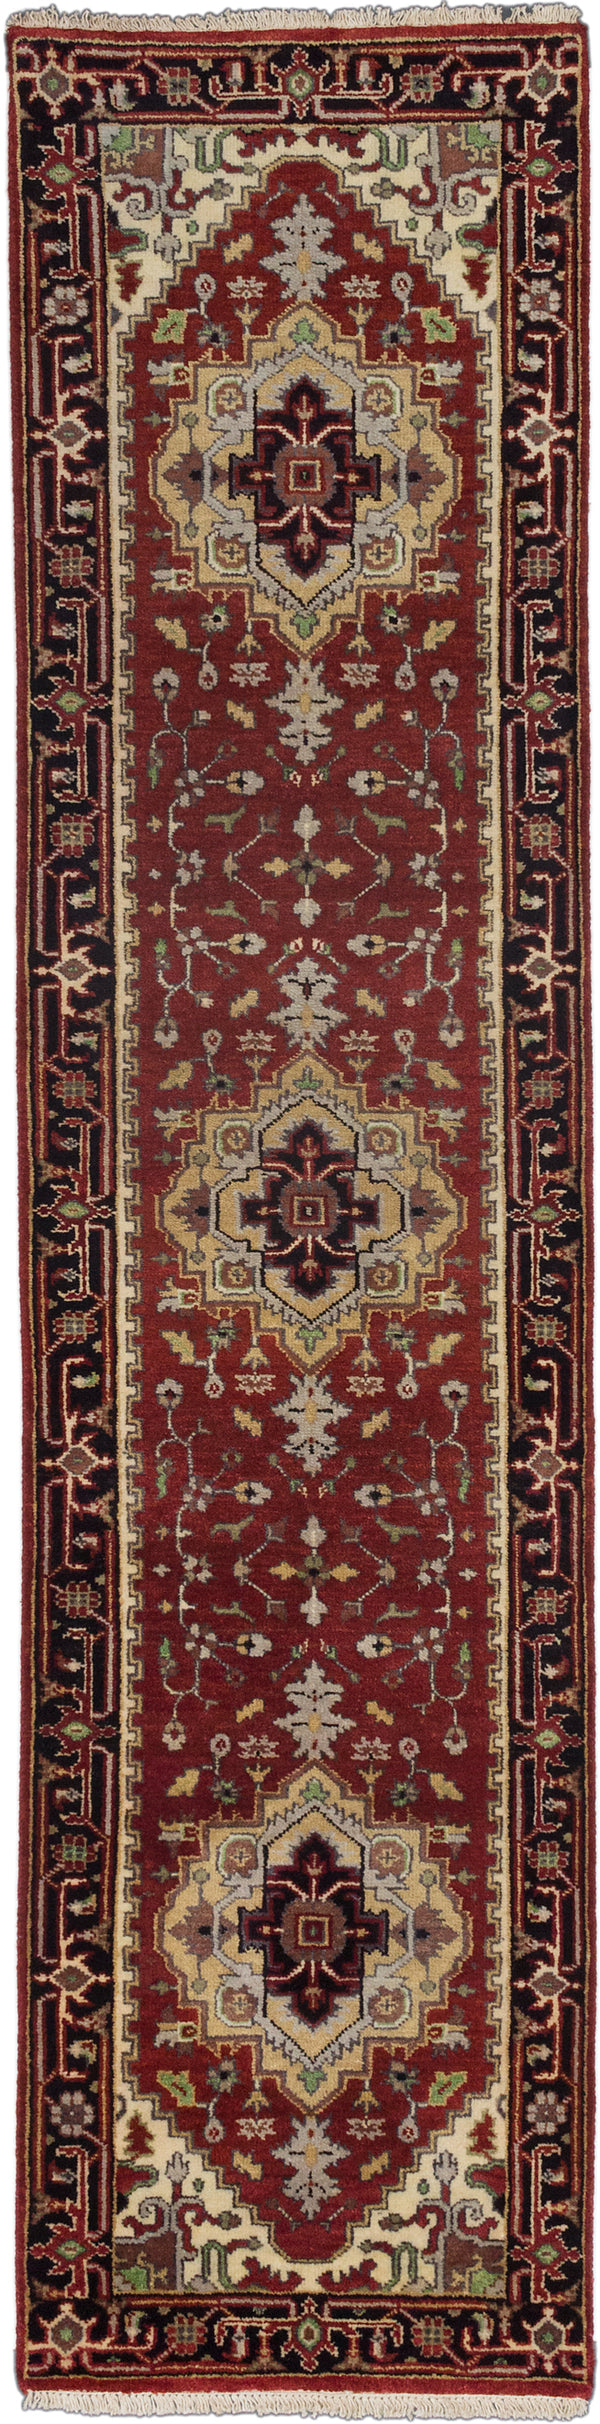 "Hand-knotted Indian Floral  Traditional Serapi-Heritage Runner rug  Black, Dark Red 2'7 x 10'3"" """